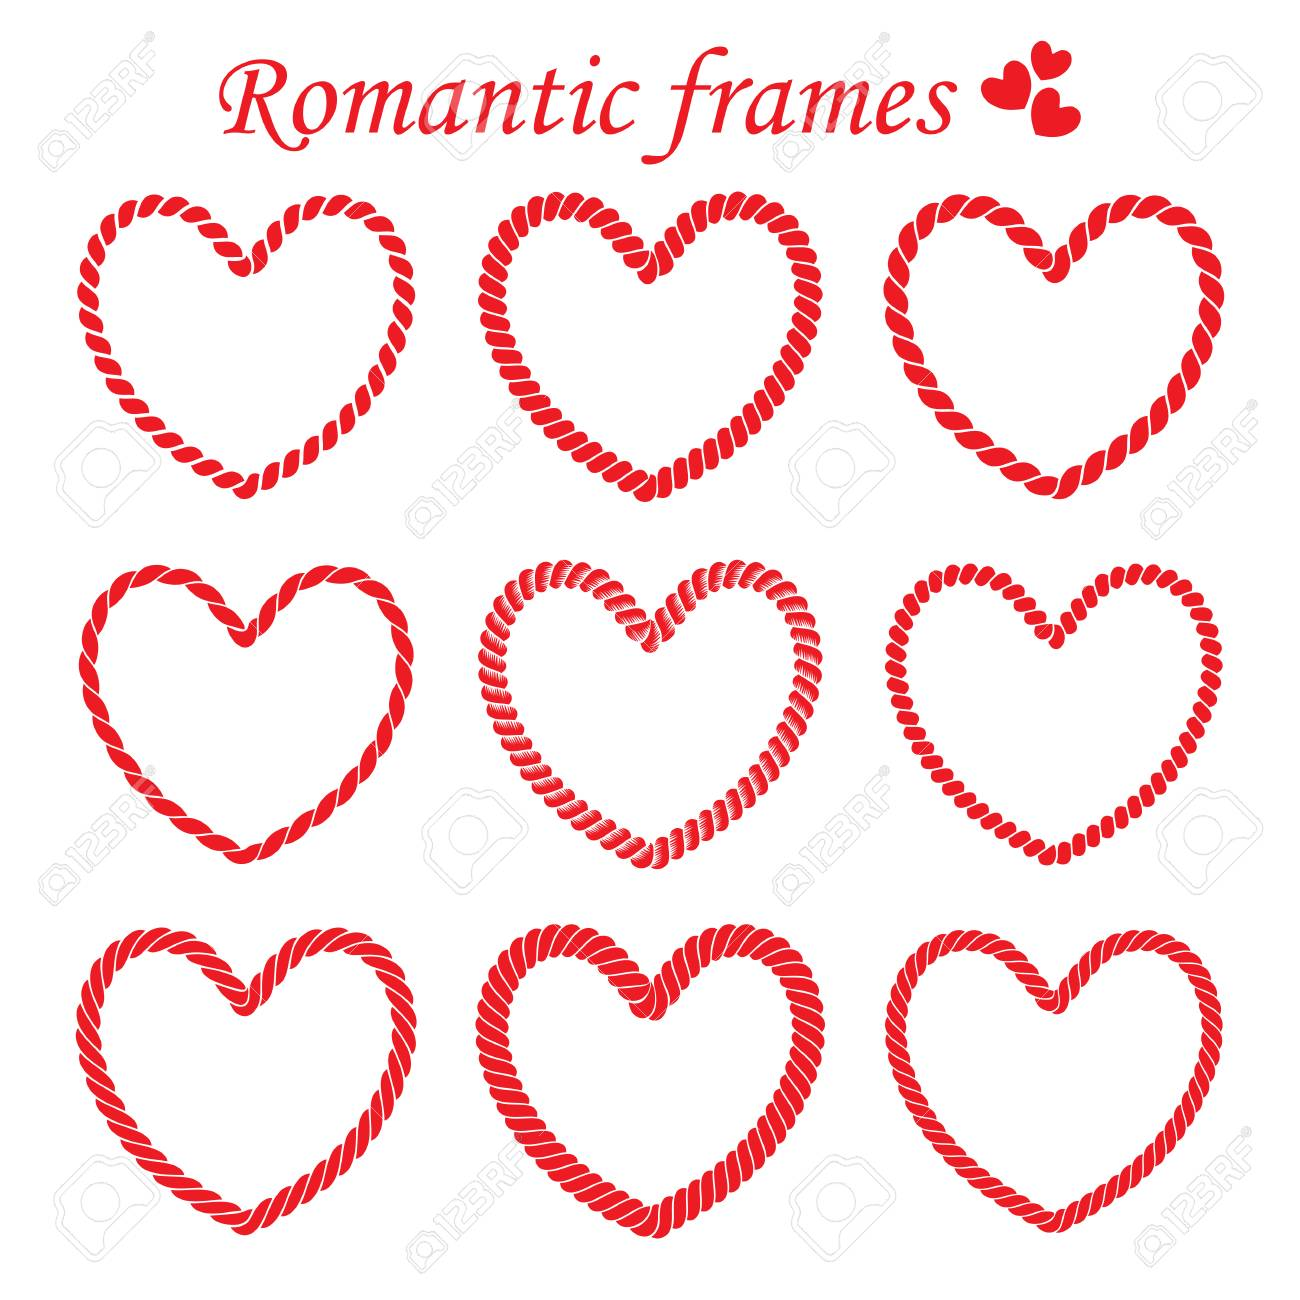 Set Of Romantic Frames Of Twisted Rope Frames In Heart Shaped ...